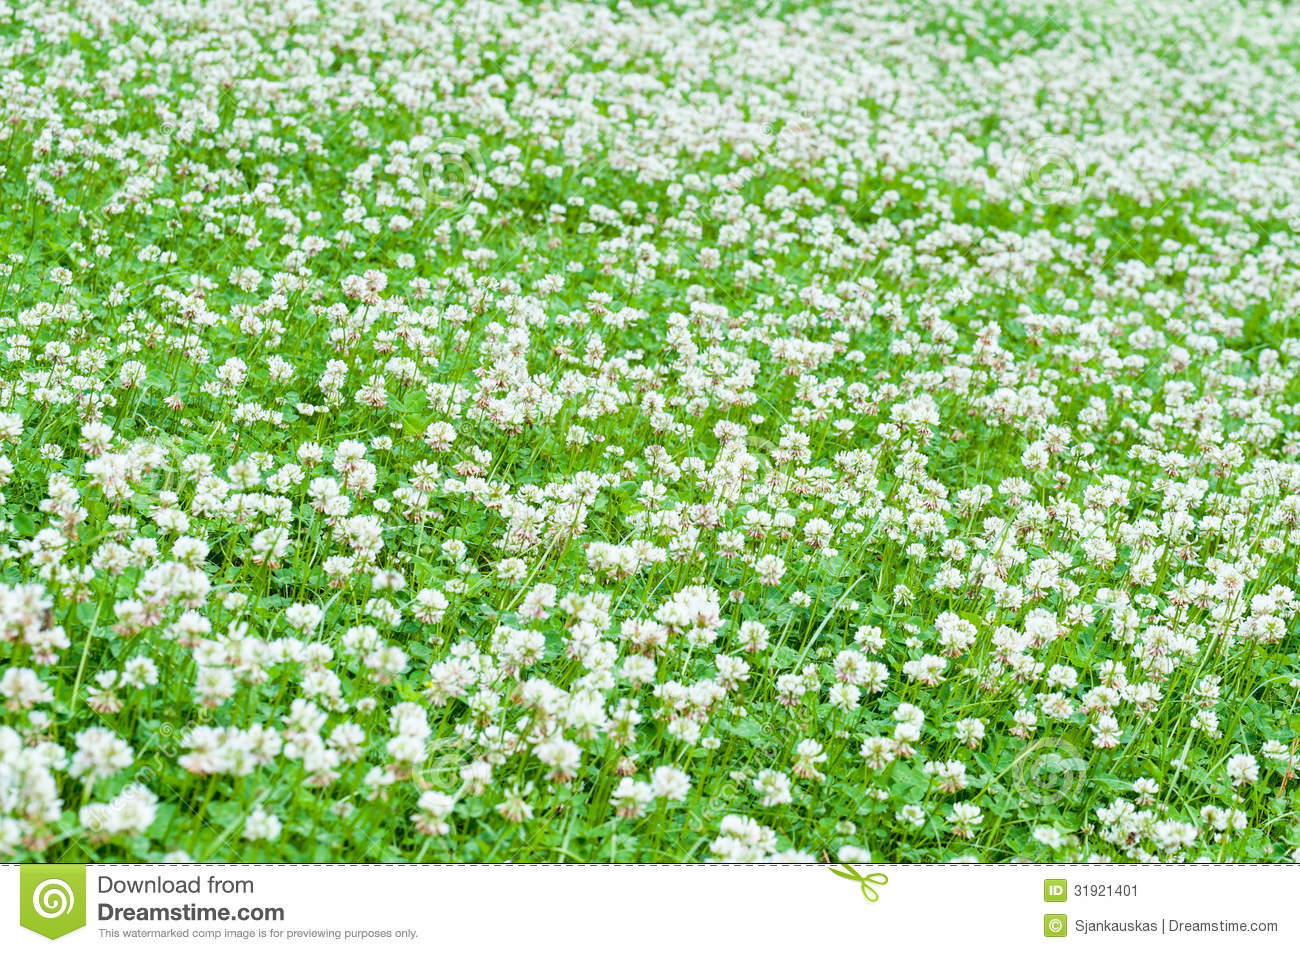 White Clover Field Stock Image - Image: 31921401